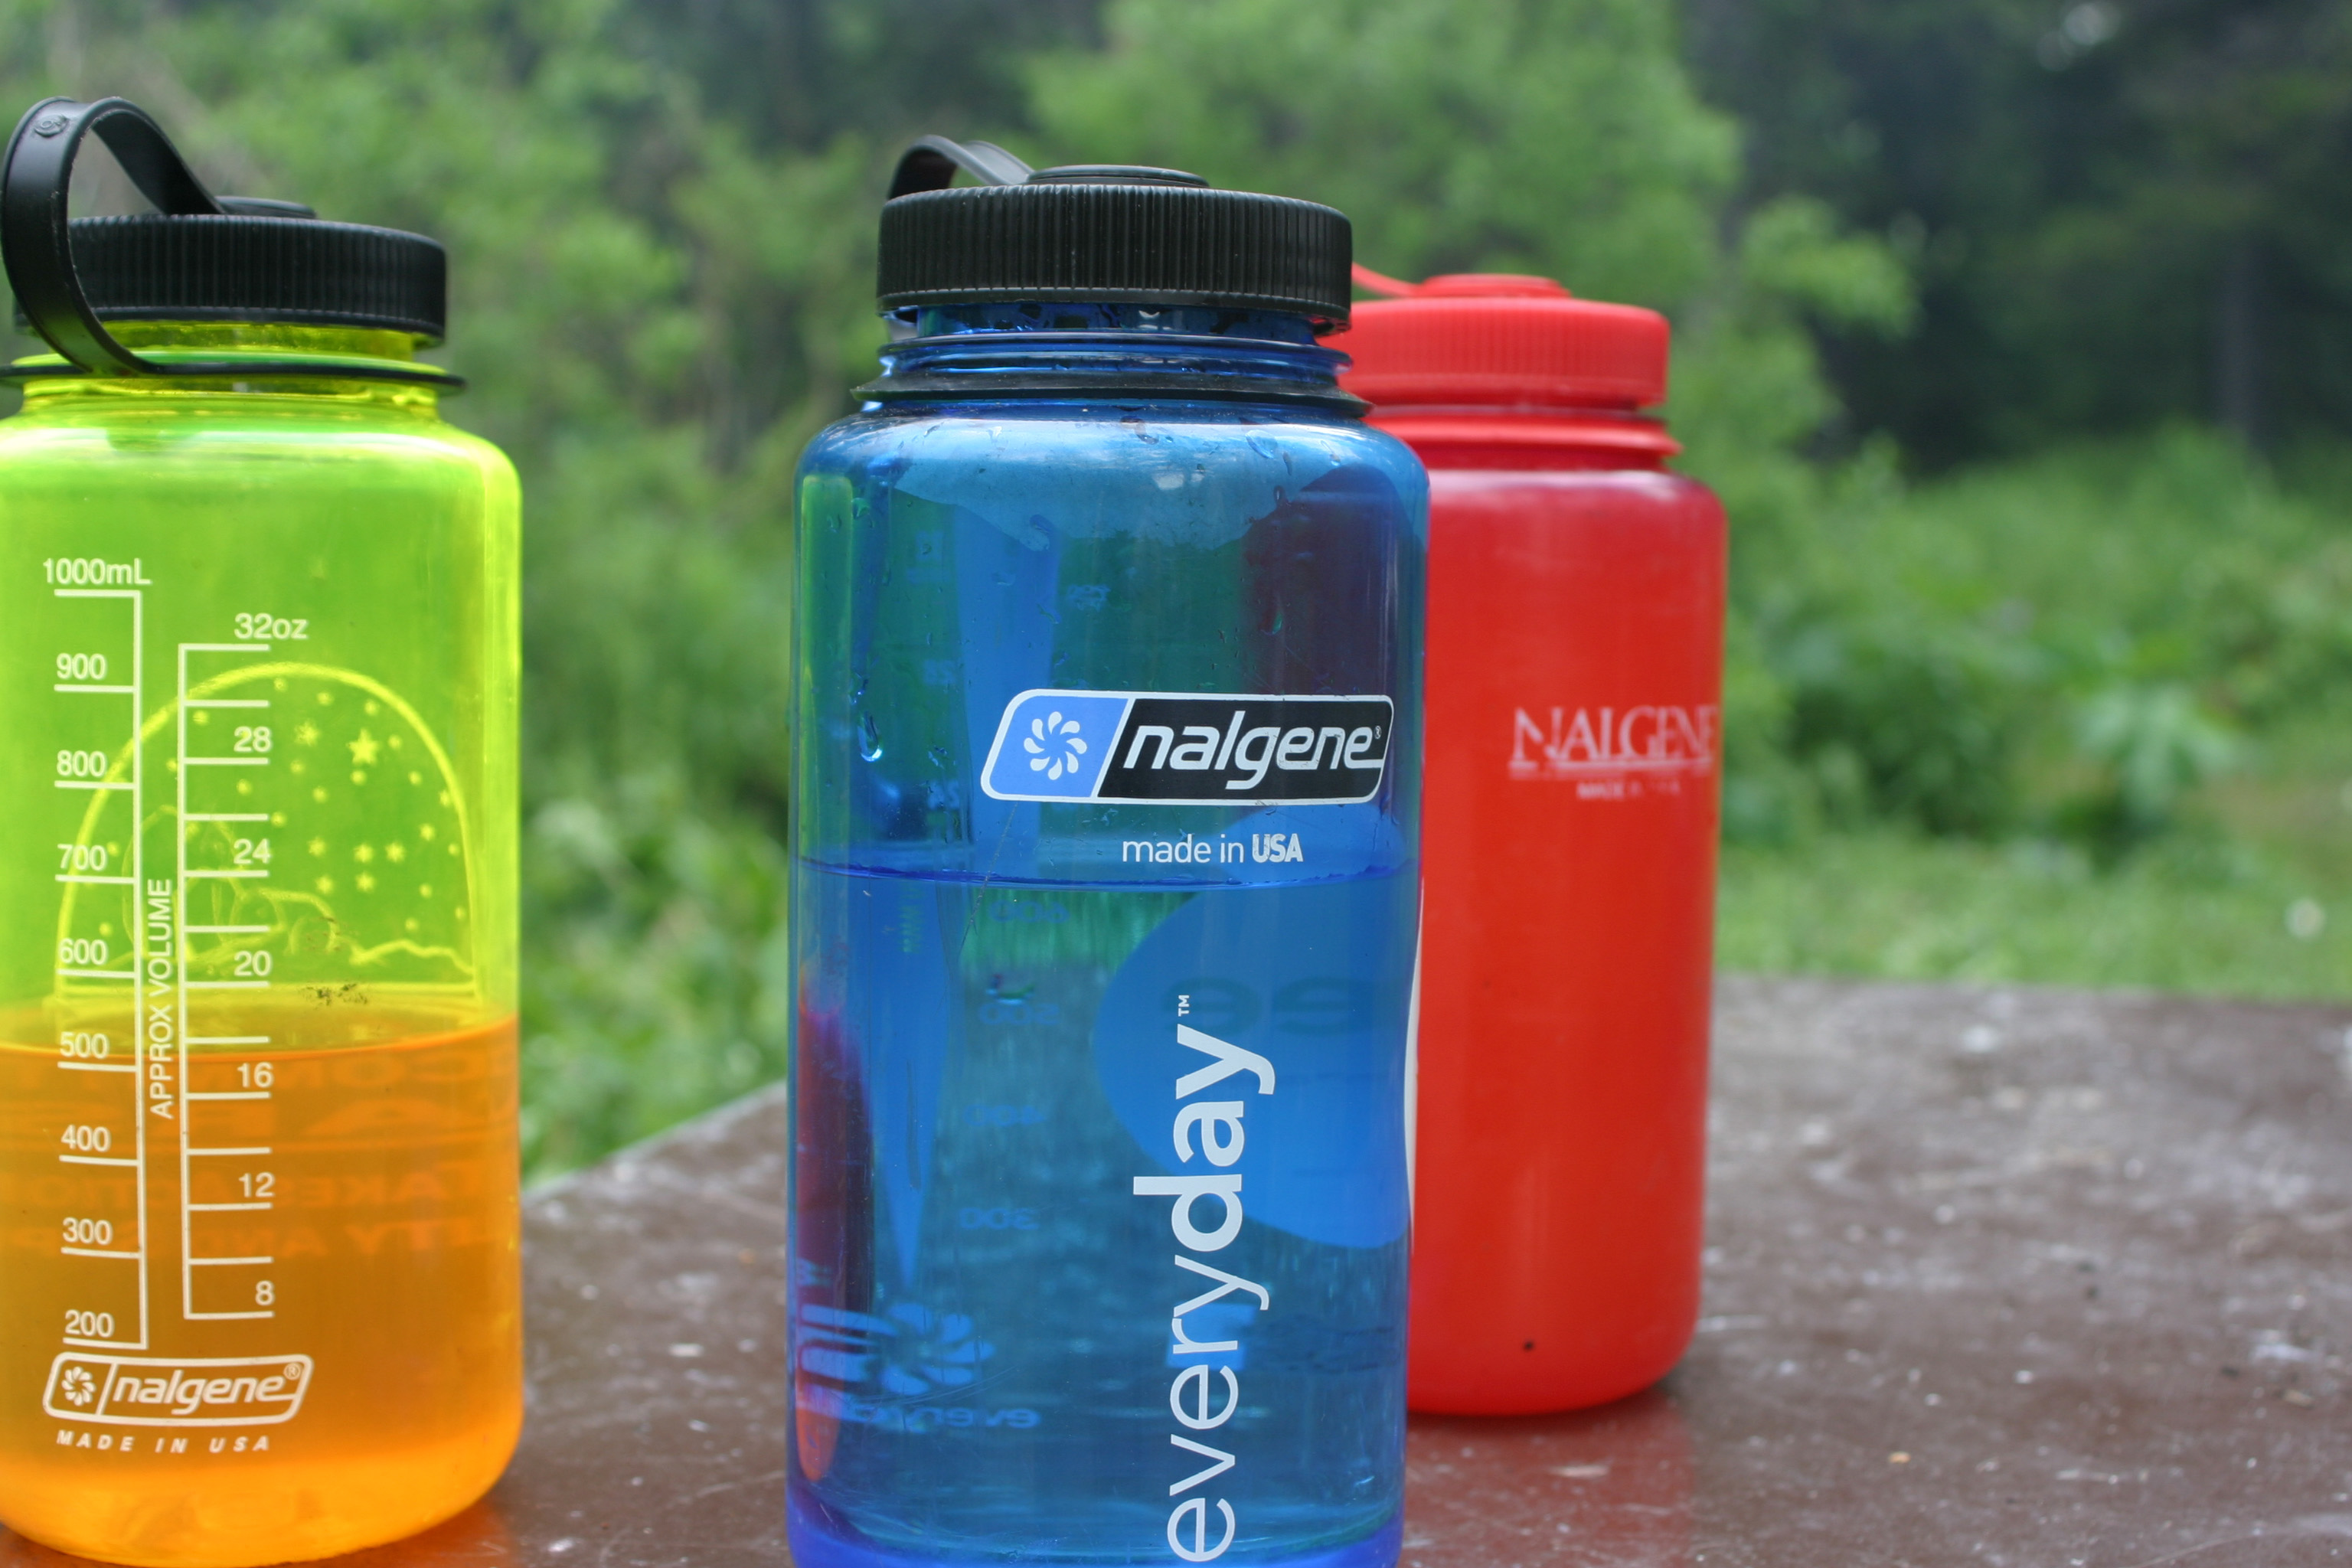 Nalgene Water Bottles IMG by Kyle LeBoeuf